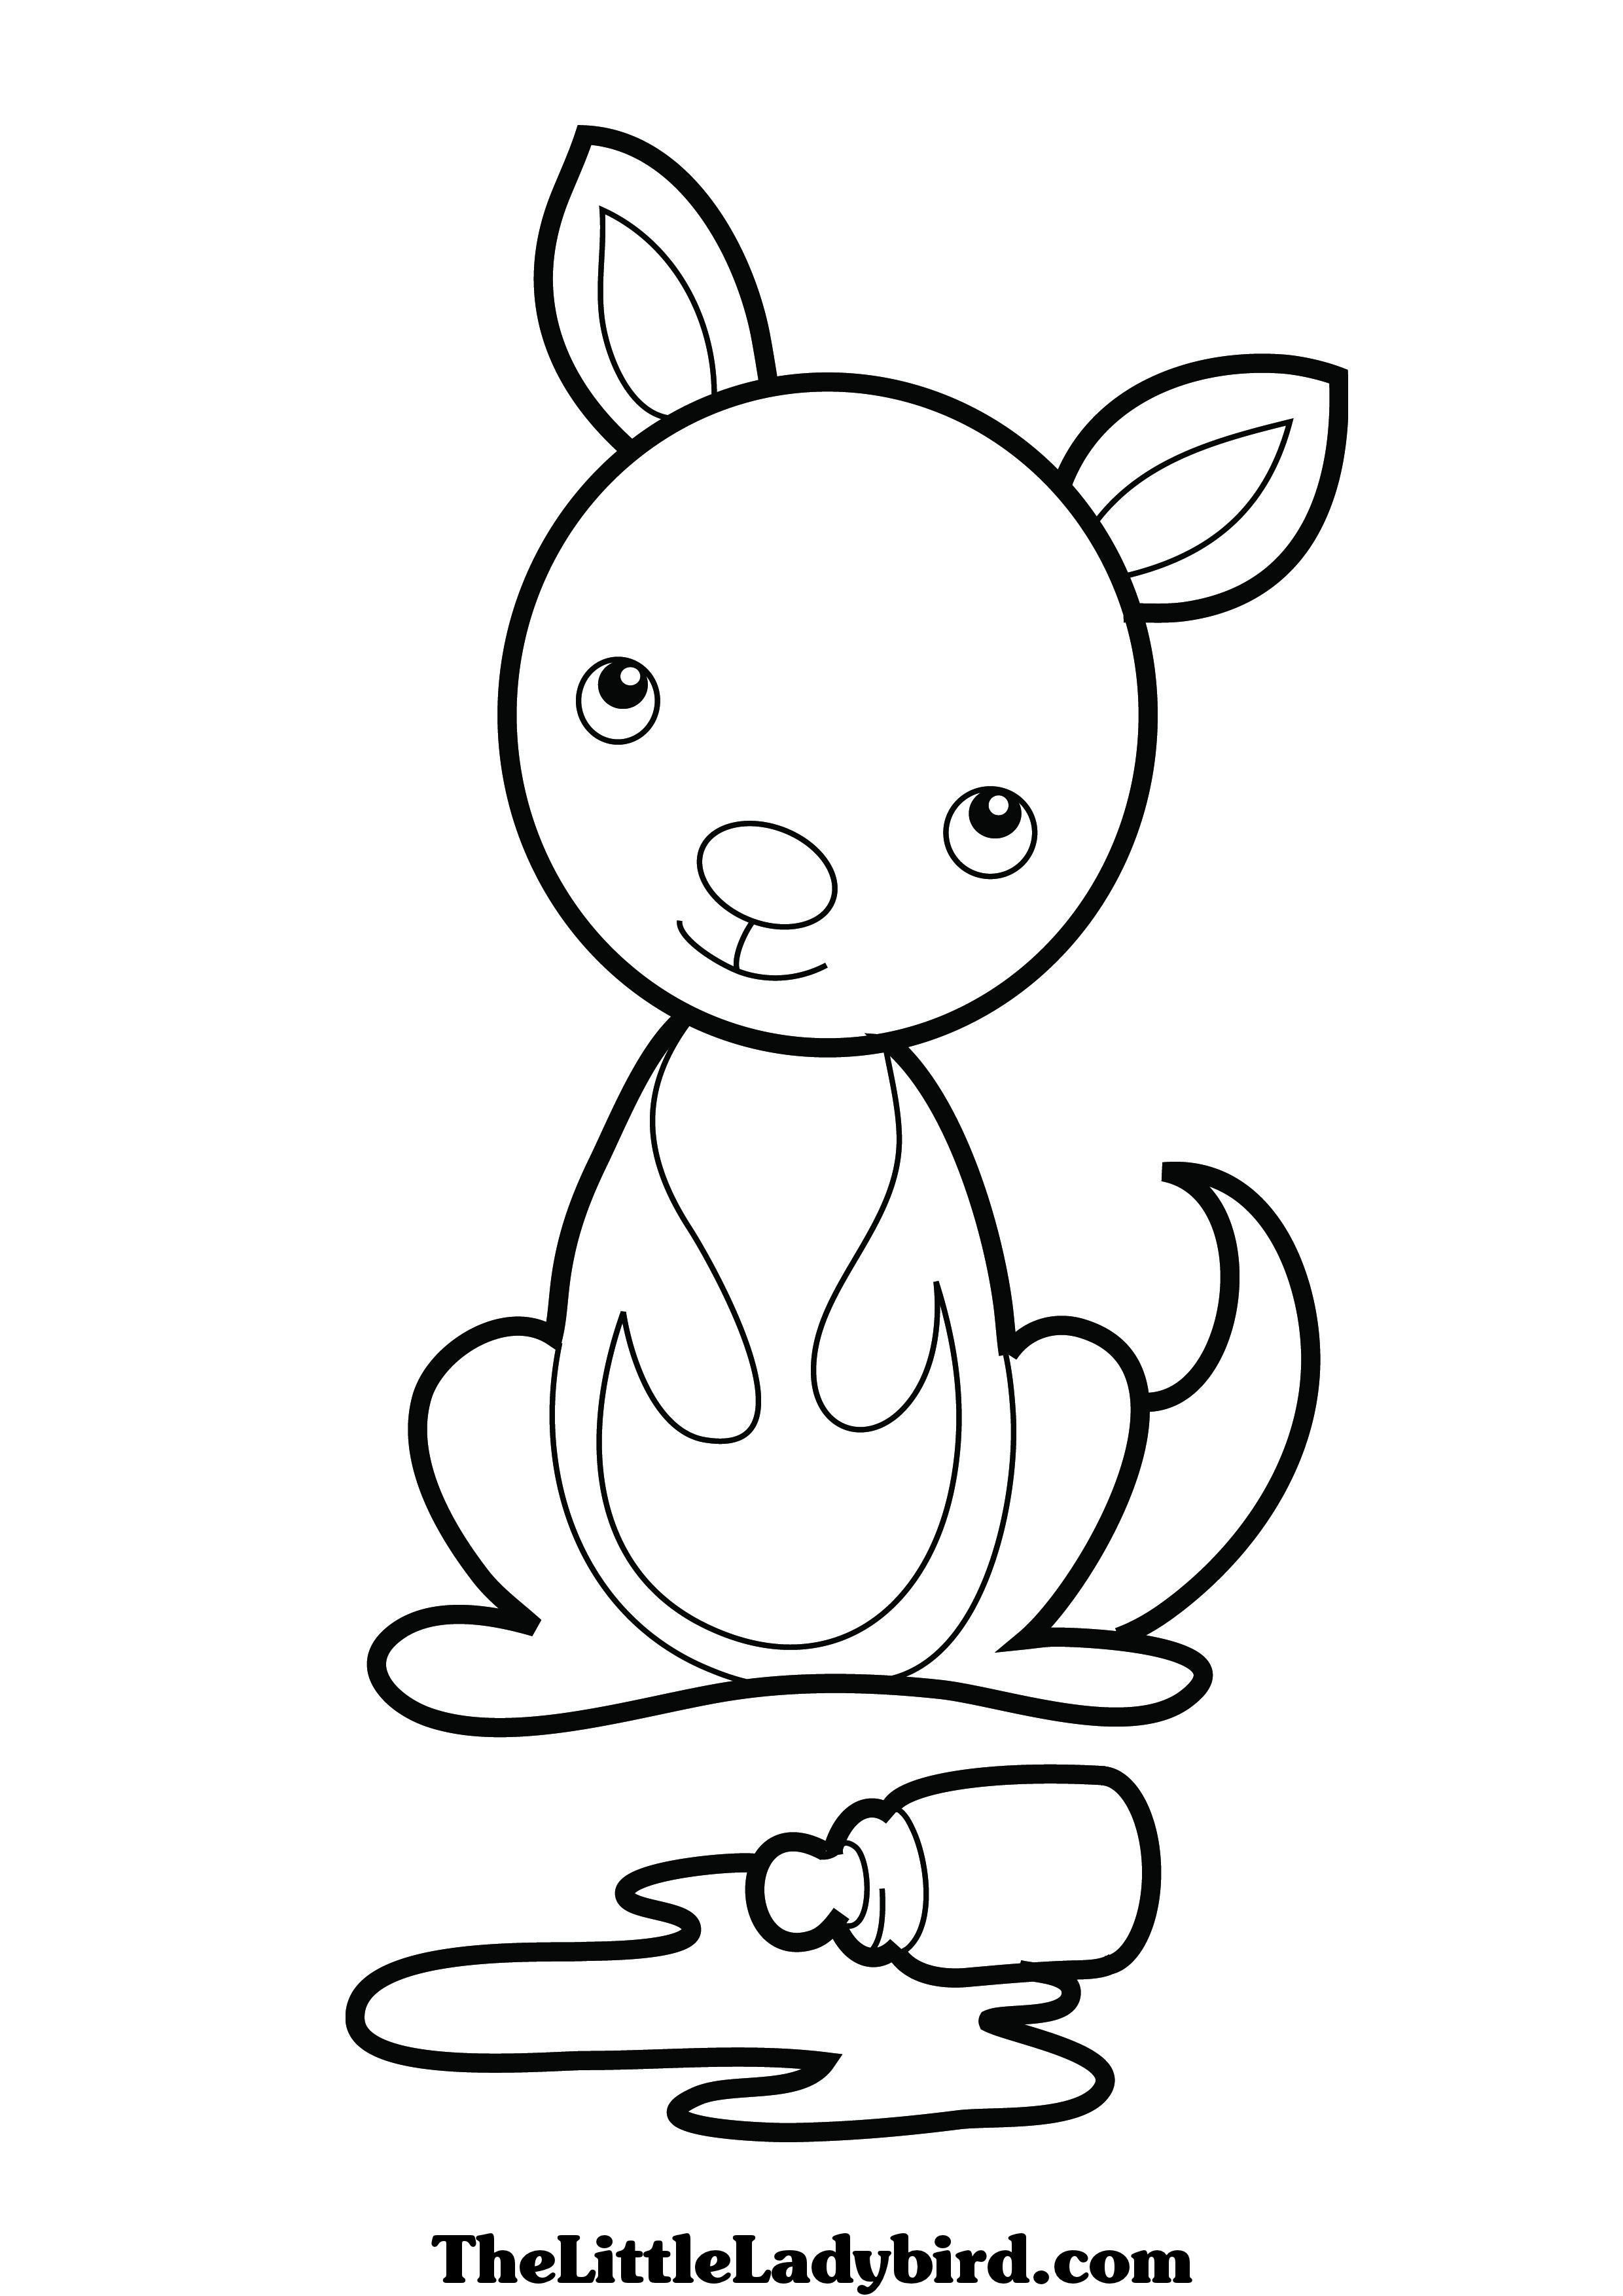 Kangaroo Coloring Pages For Kids at GetDrawings.com | Free for ...